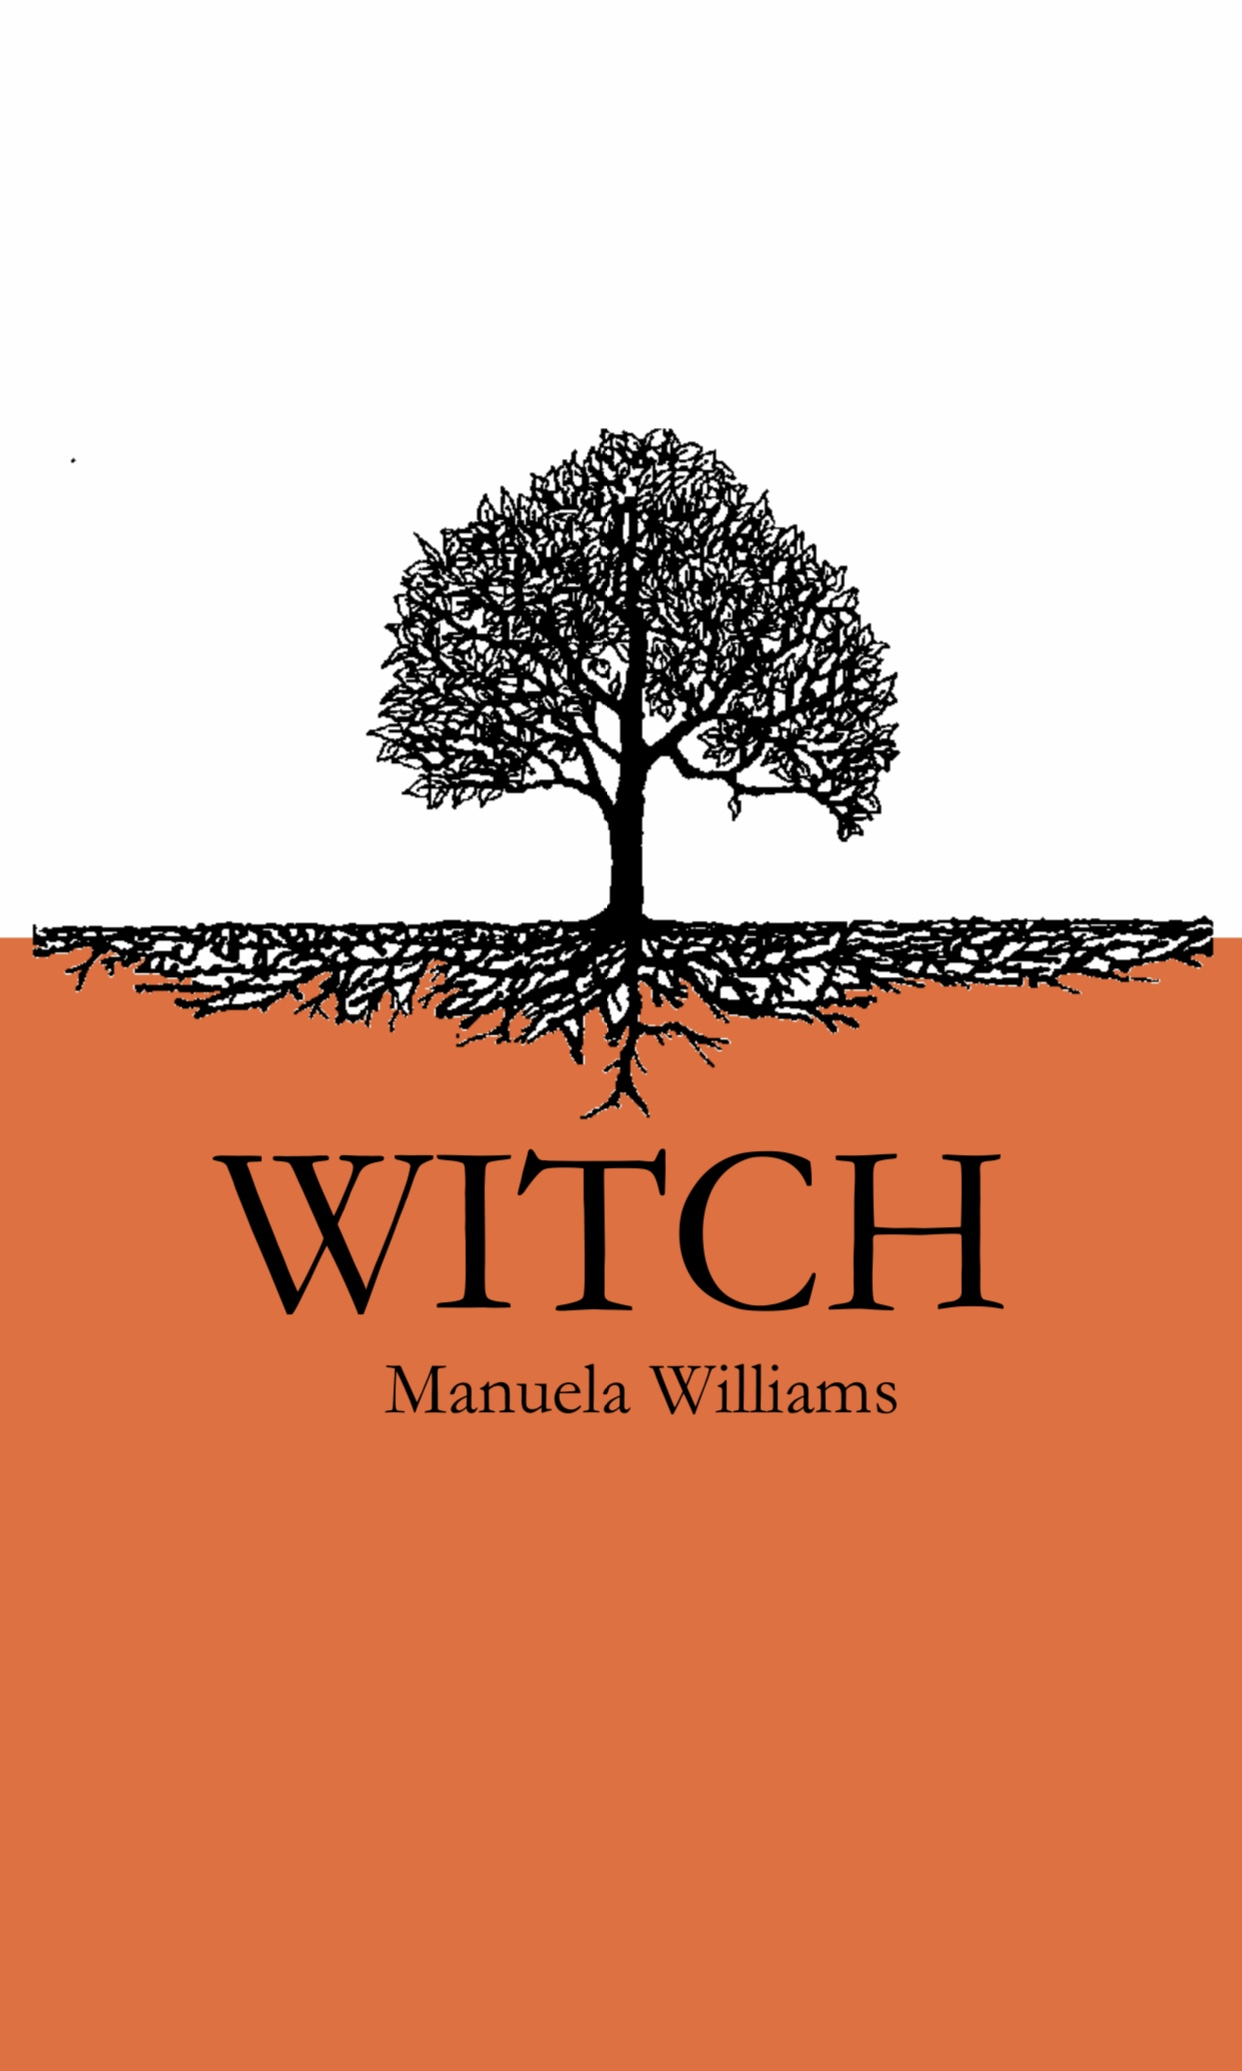 witch-book-cover-manuela-williams